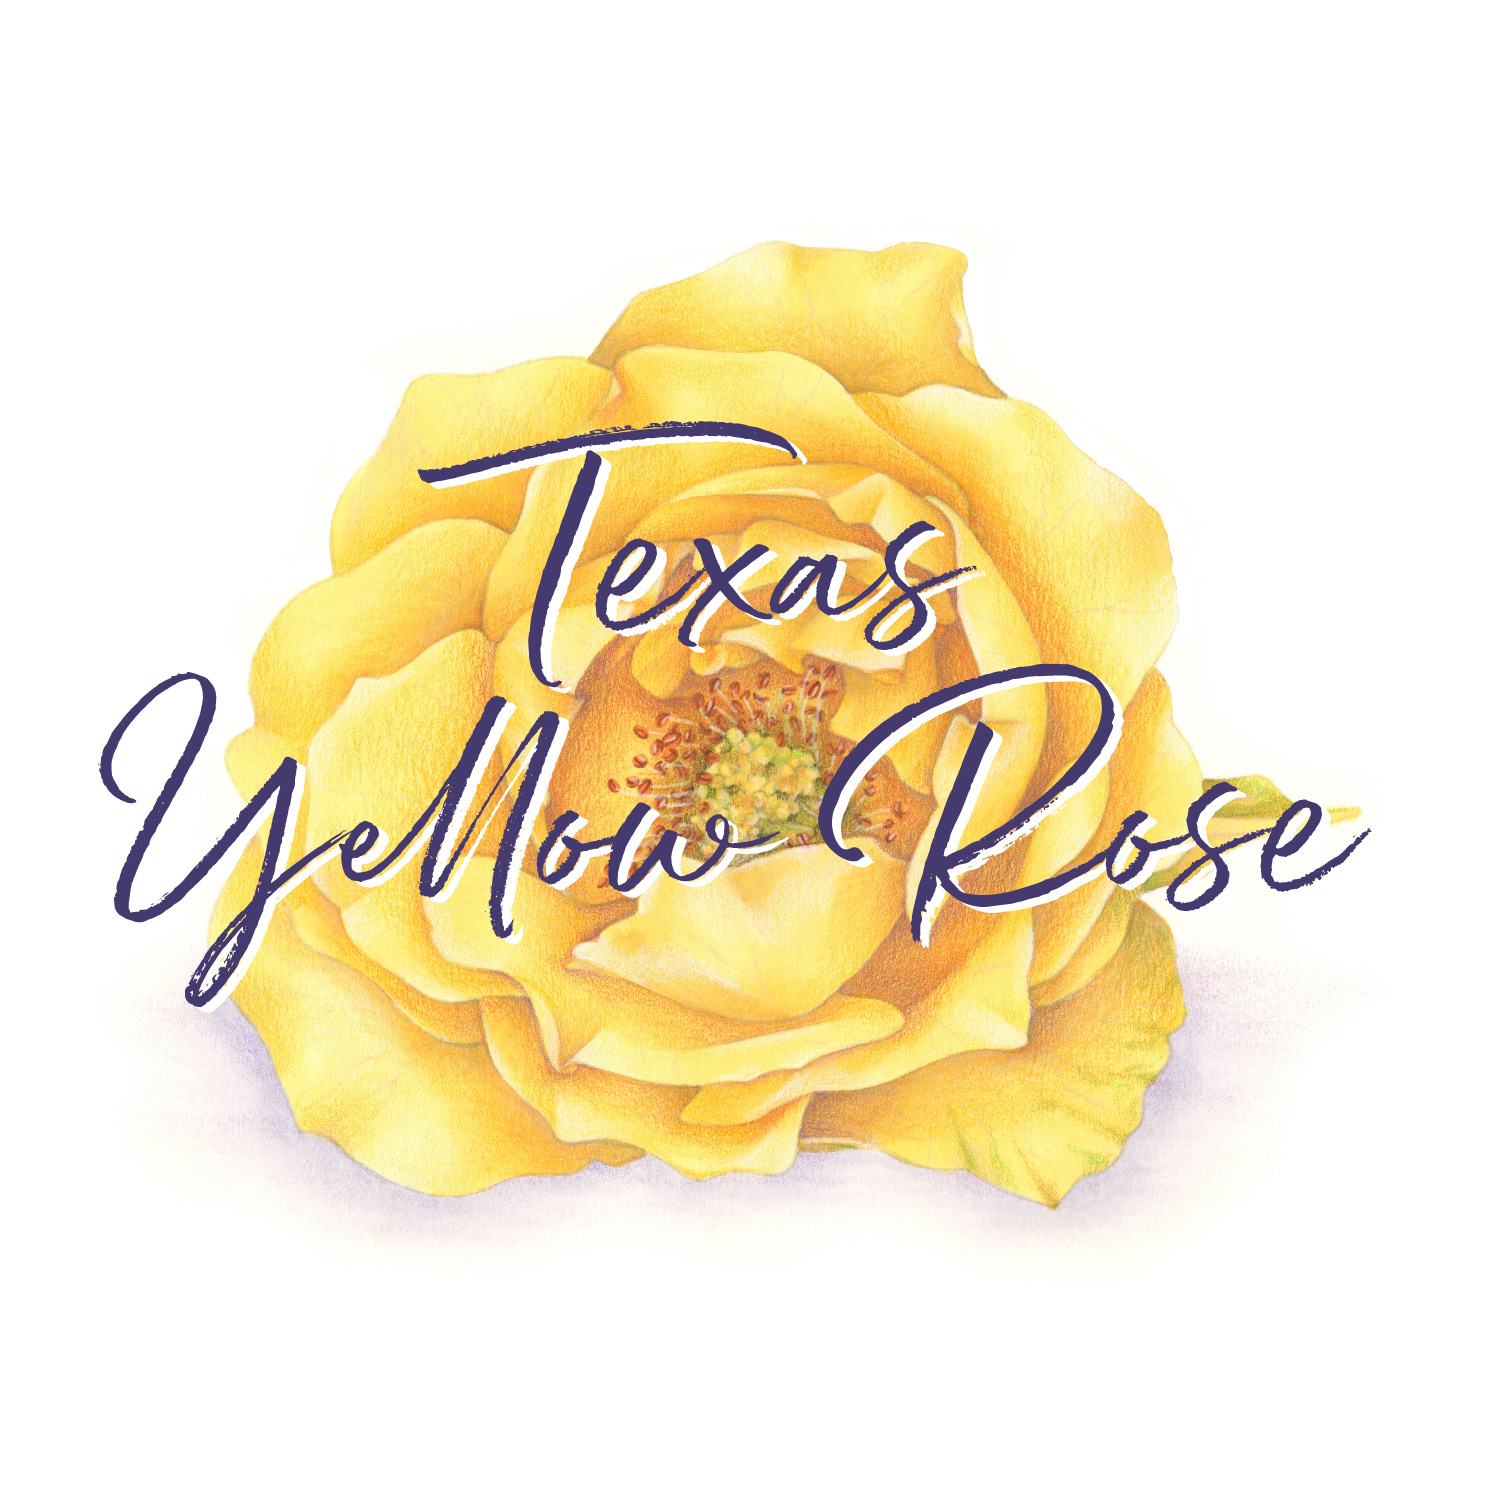 Texas Yellow Rose is an intermediate/advanced level Copic & Colored Pencil VanillaArts.com Digital Stamp & Retreat Booklet